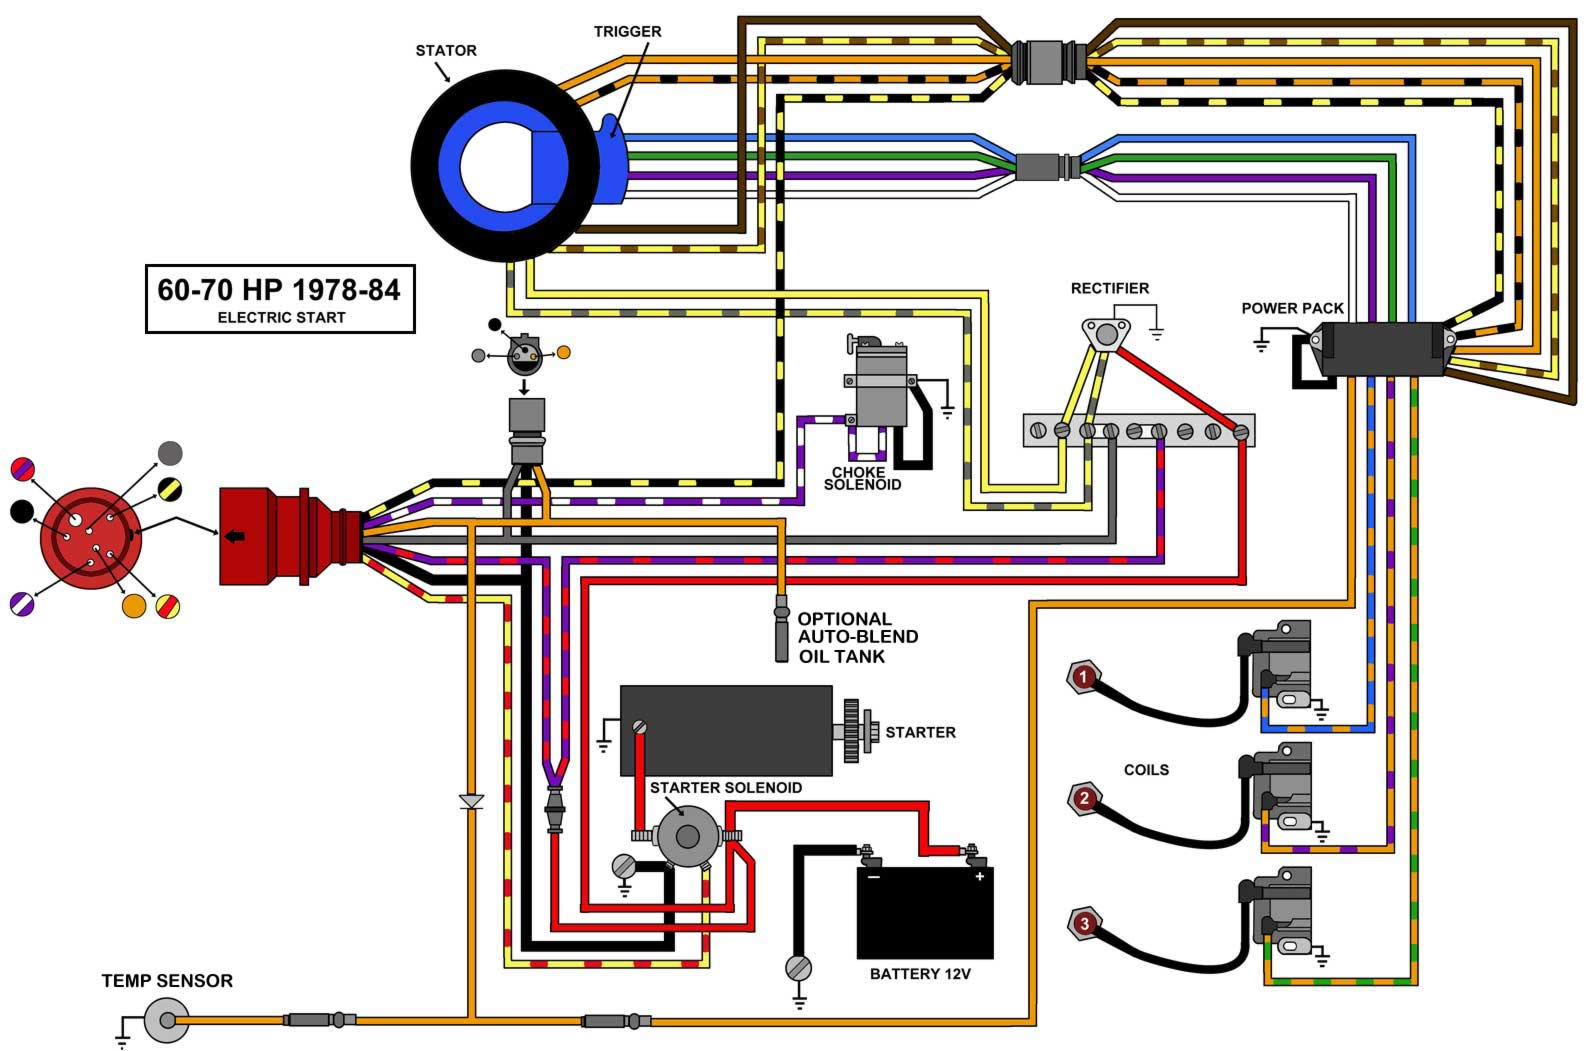 78 84_3 CYL_EL omc wiring harness diagram johmson wiring harness \u2022 wiring Boat Ignition Switch Wiring Diagram at highcare.asia